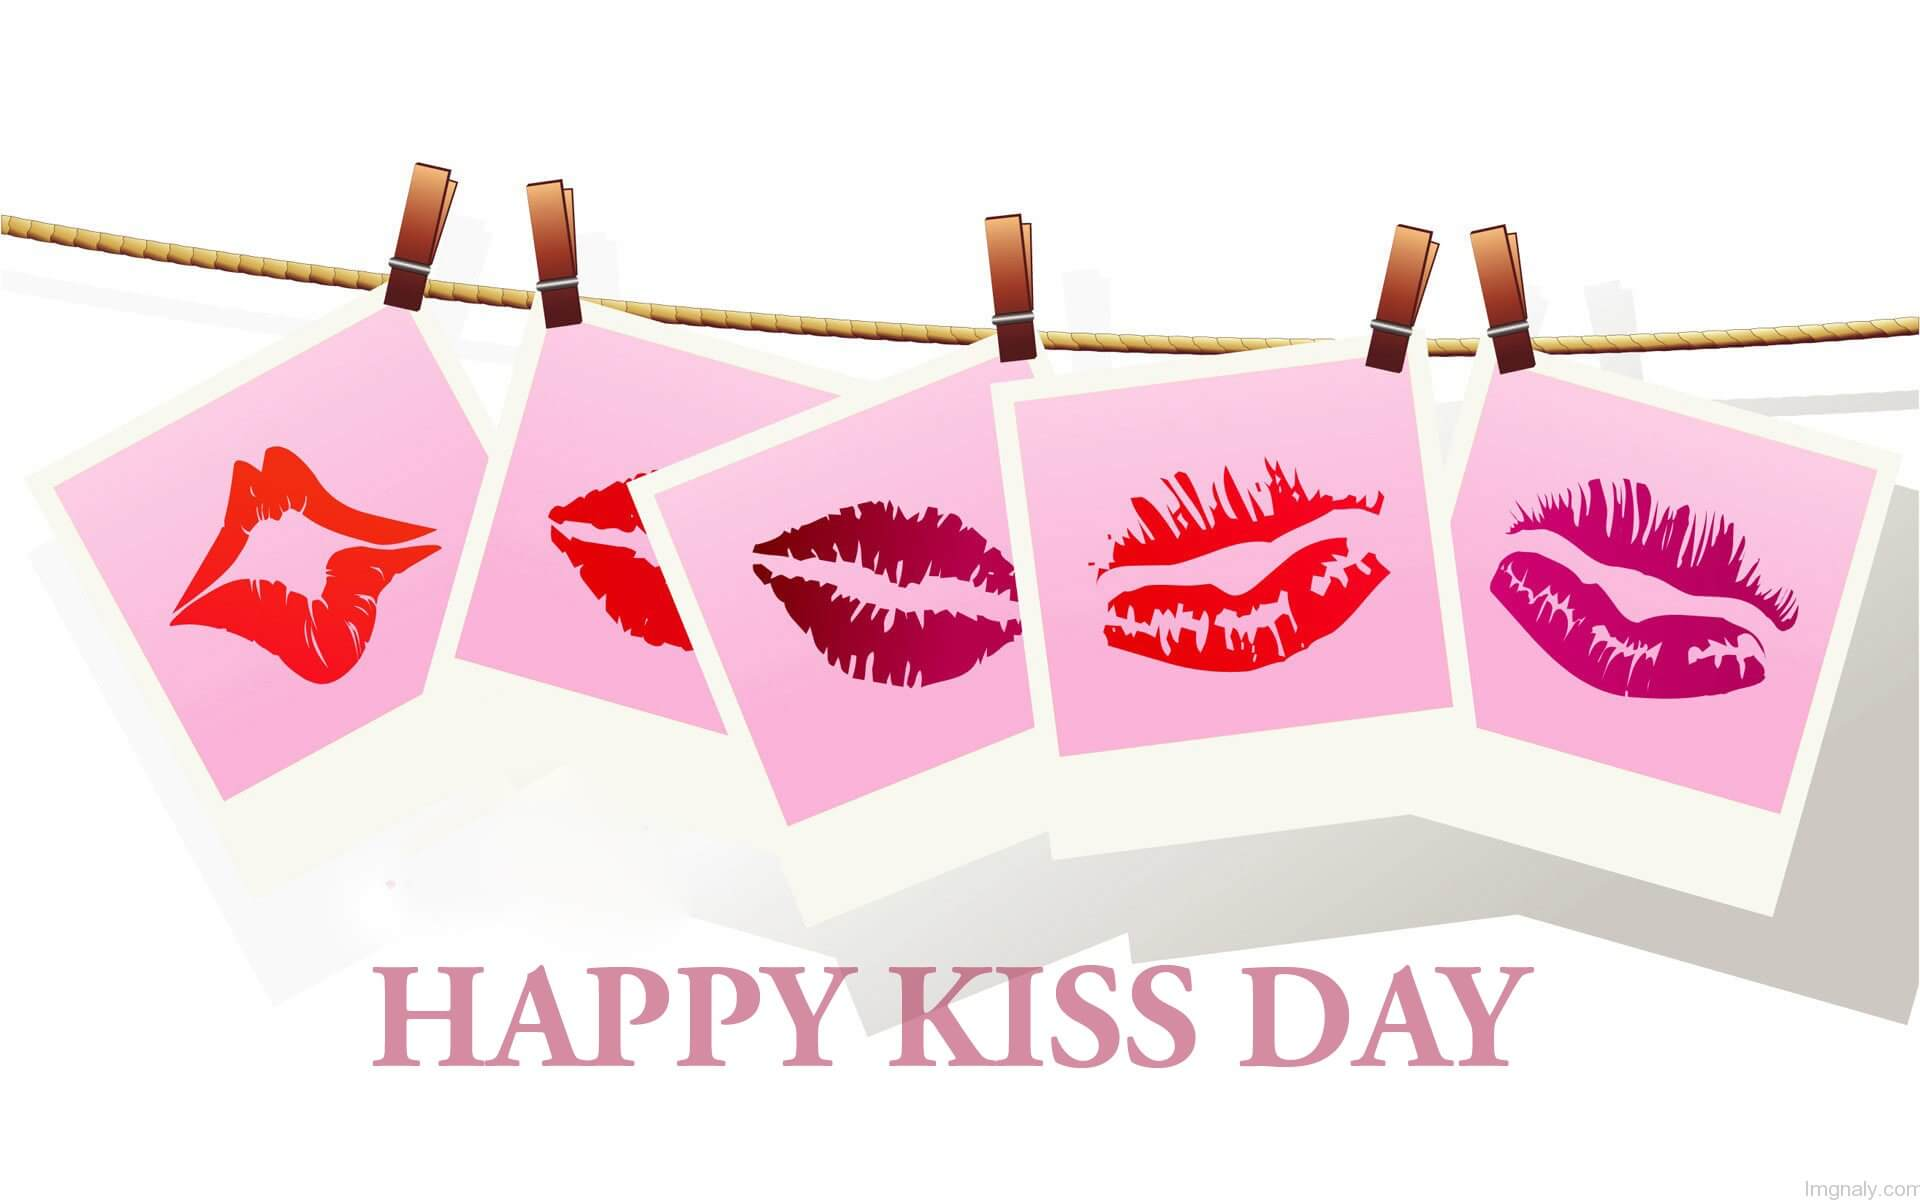 happy kiss day wishes hanging lips love valentine graphic image hd wallpaper